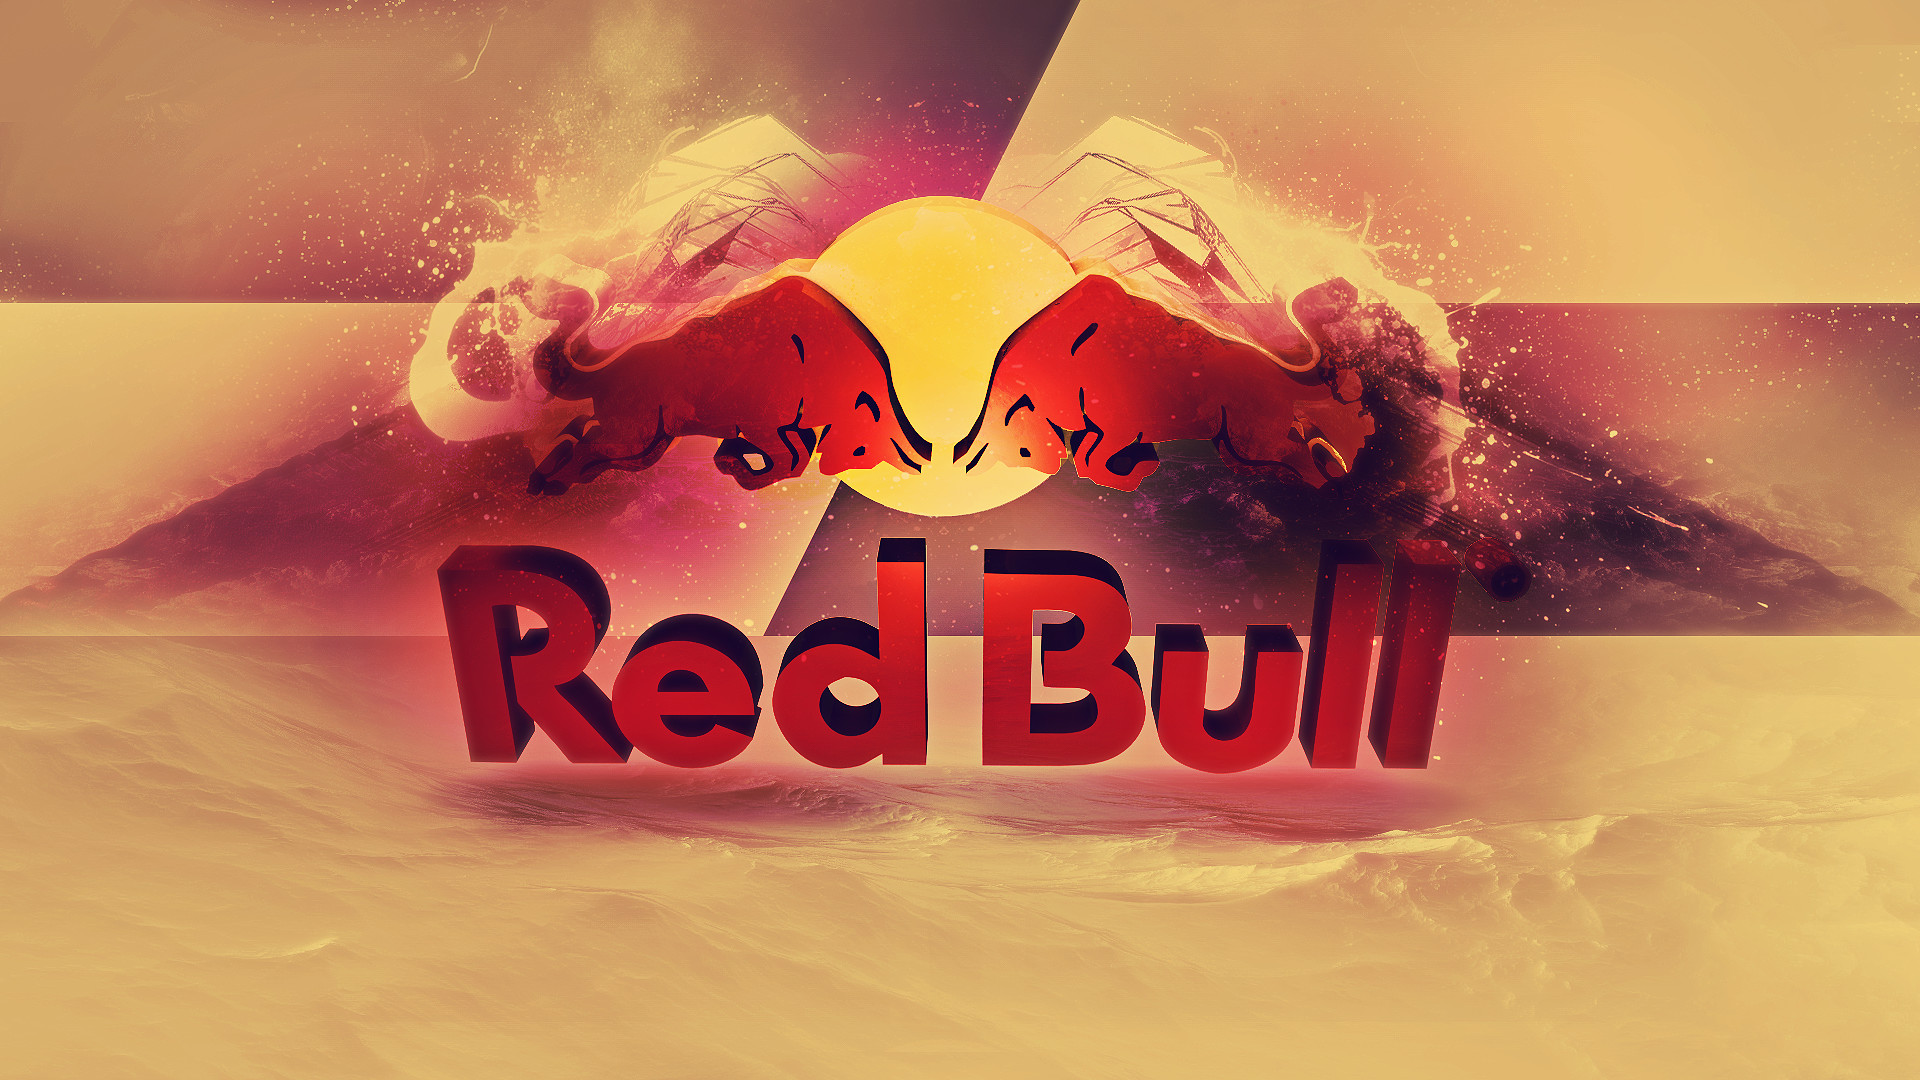 1920x1080 Abstract Red Bull Wallpaper 17891